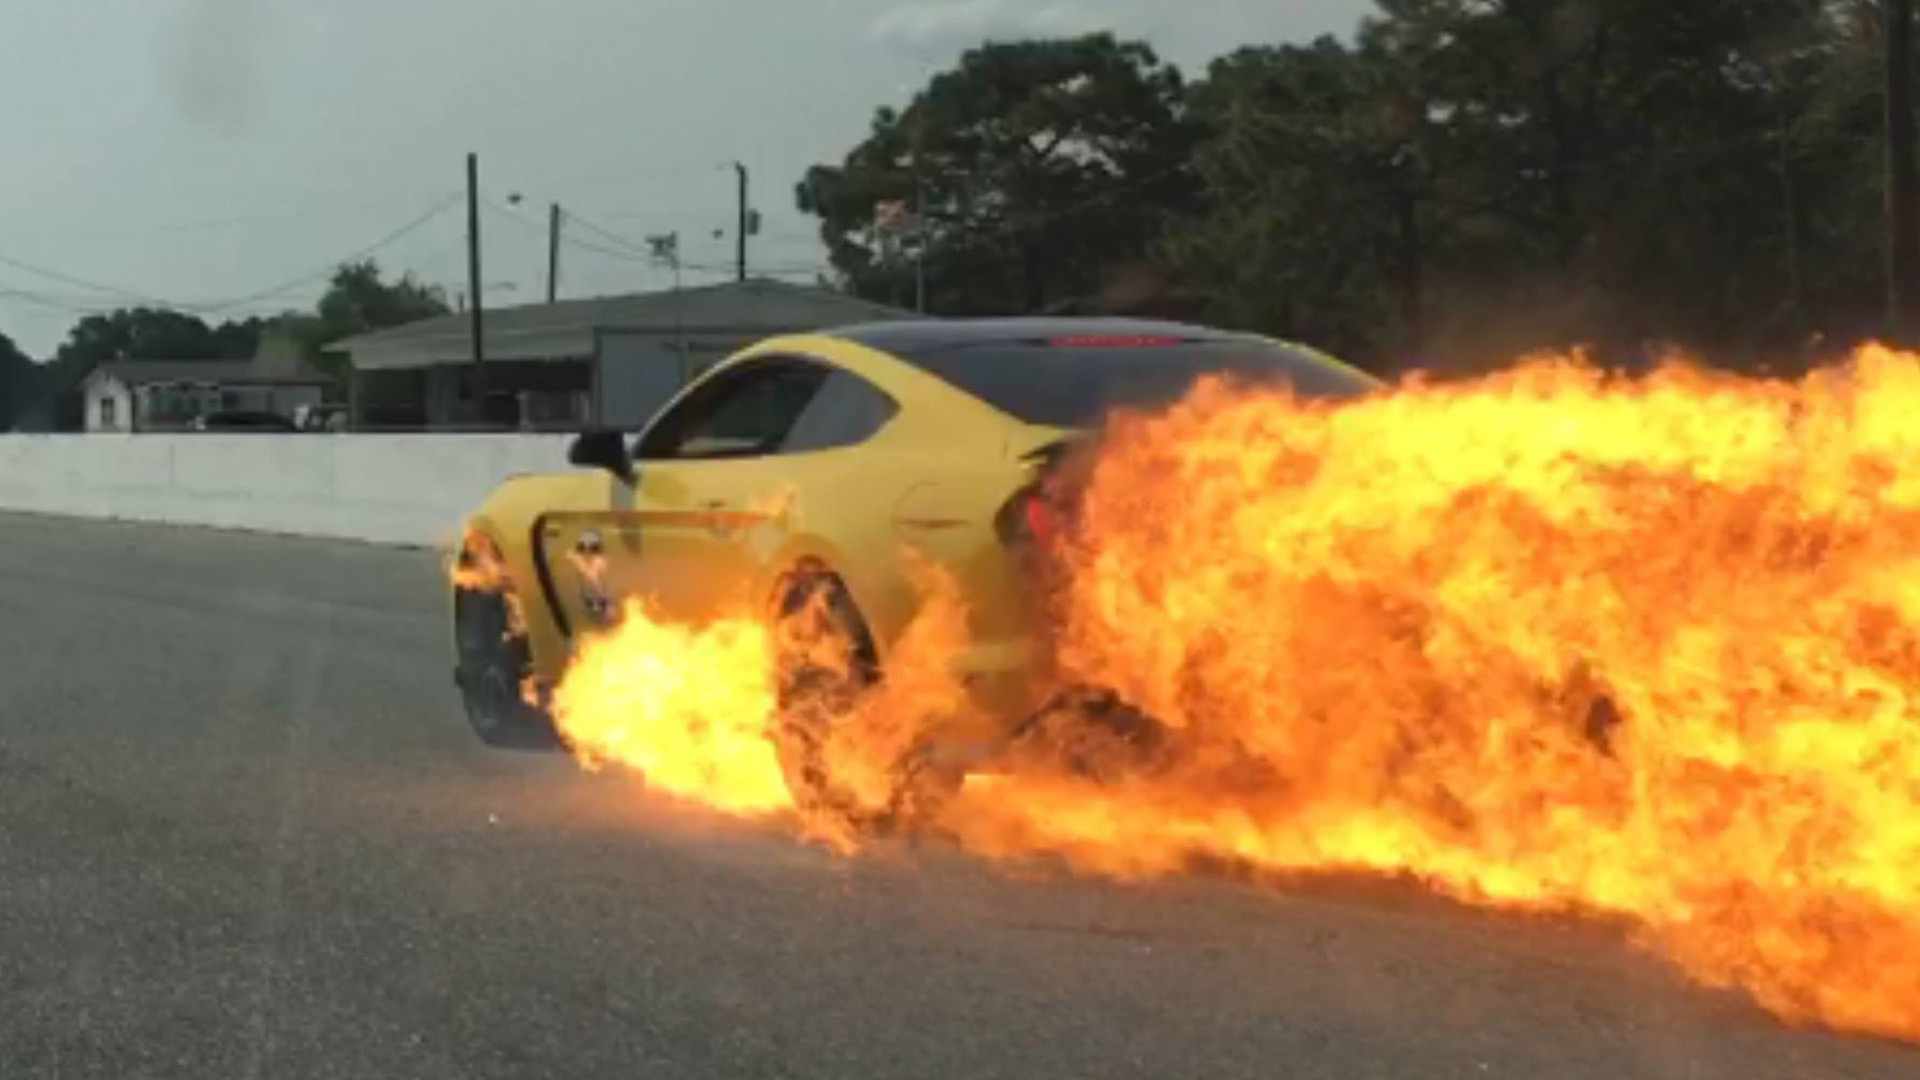 Shelby Gt350 Turns Into Fireball After Flames Kill Brakes